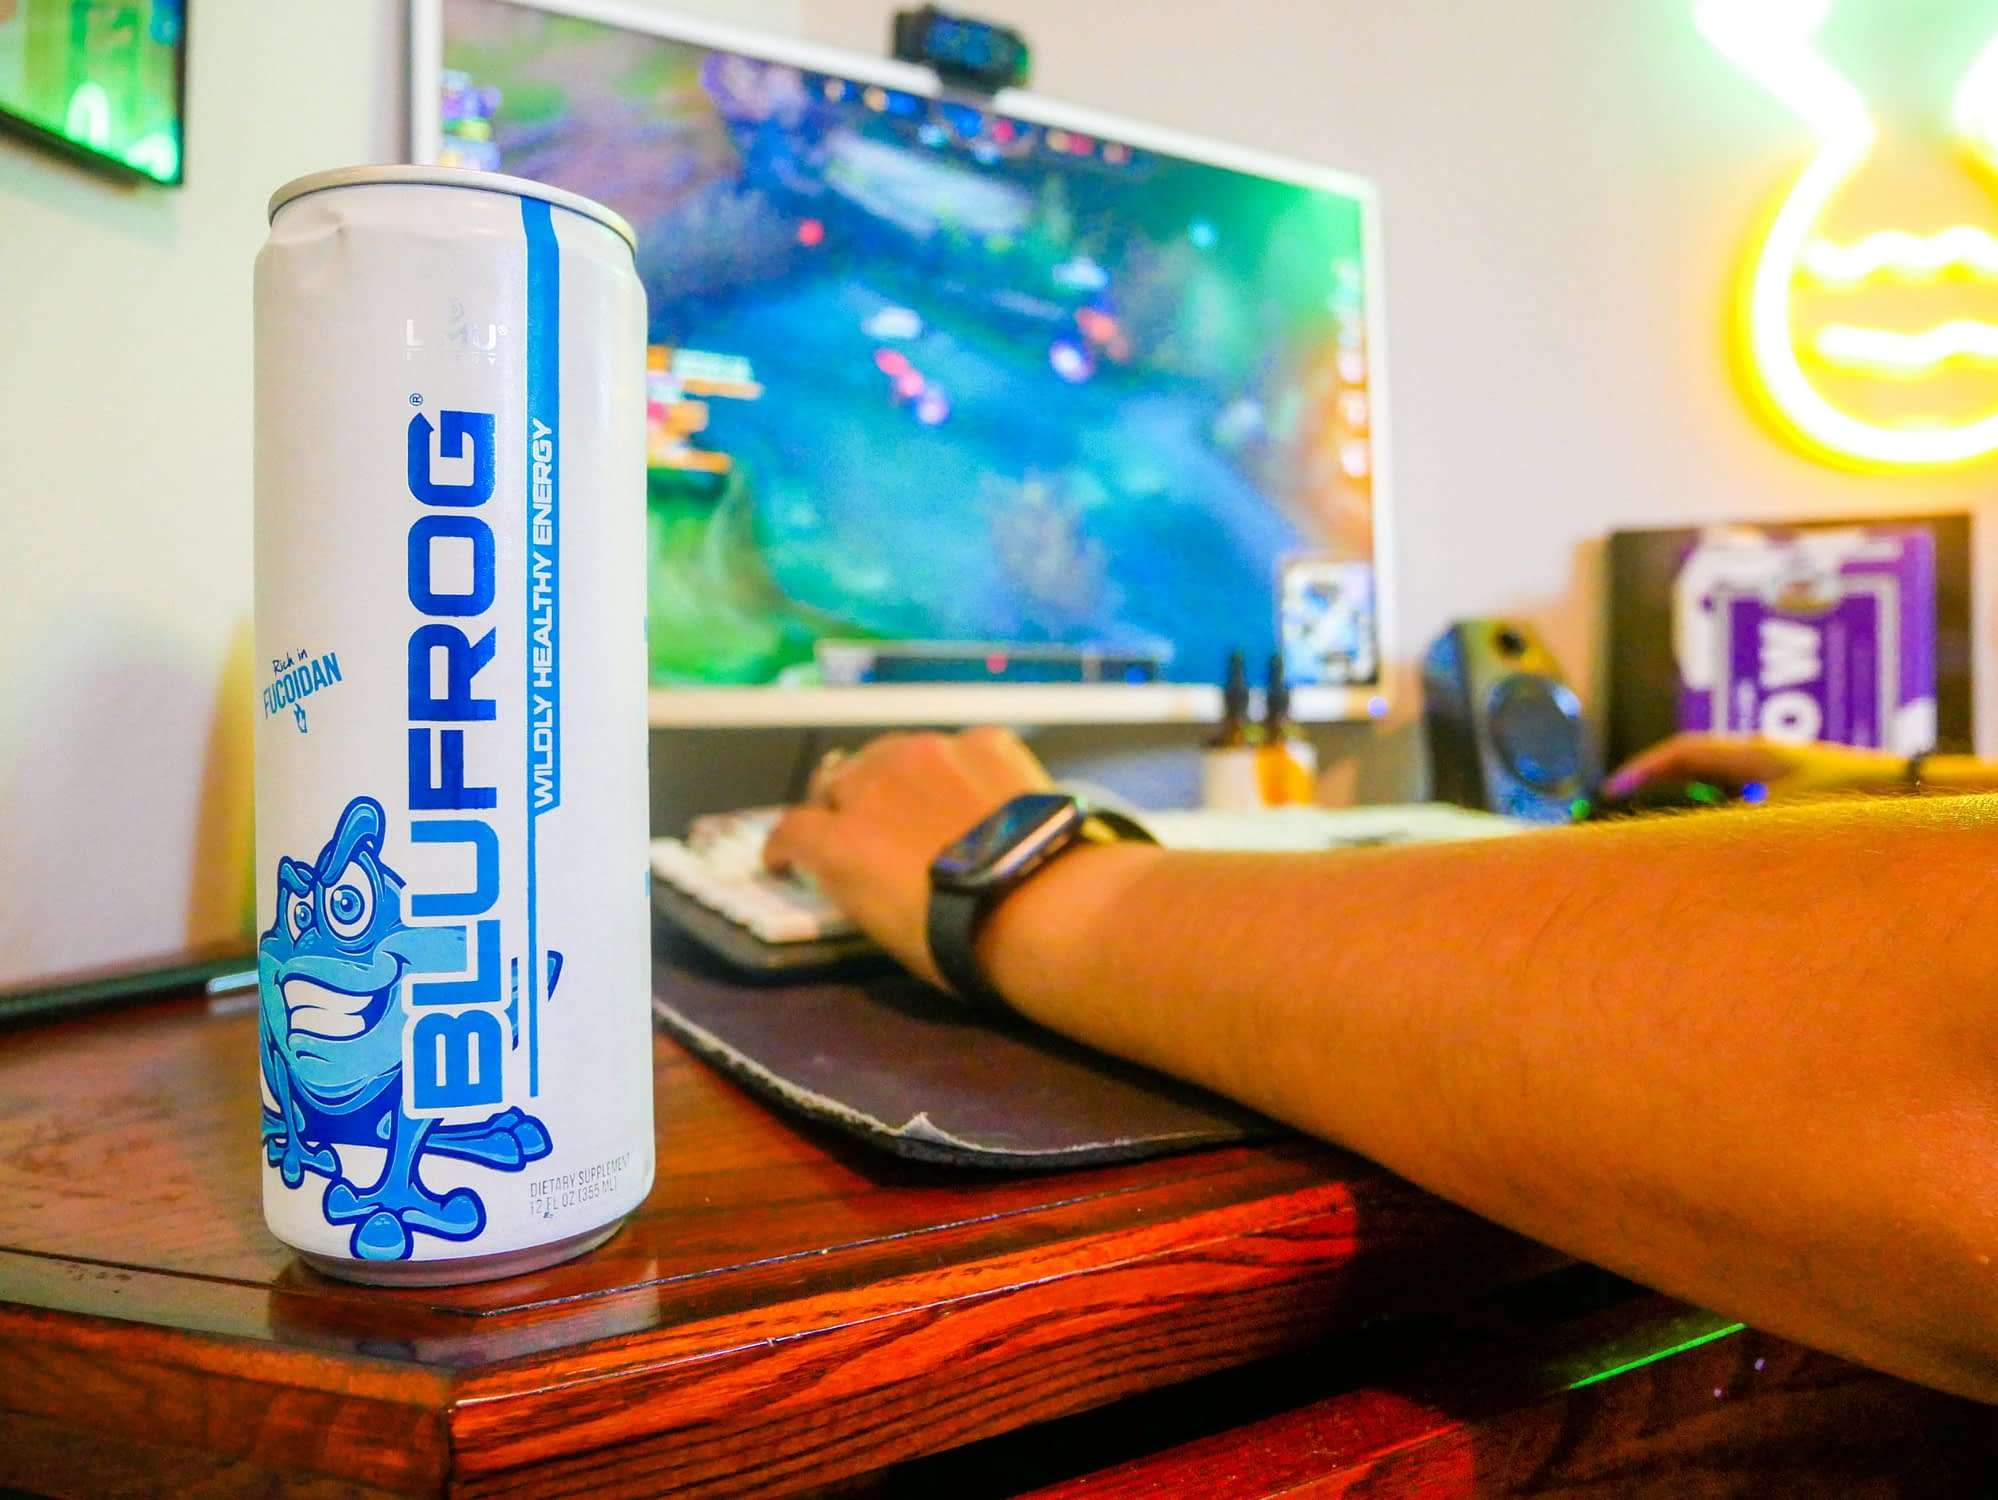 photo of blufrog energy drink on desk with gamer playing